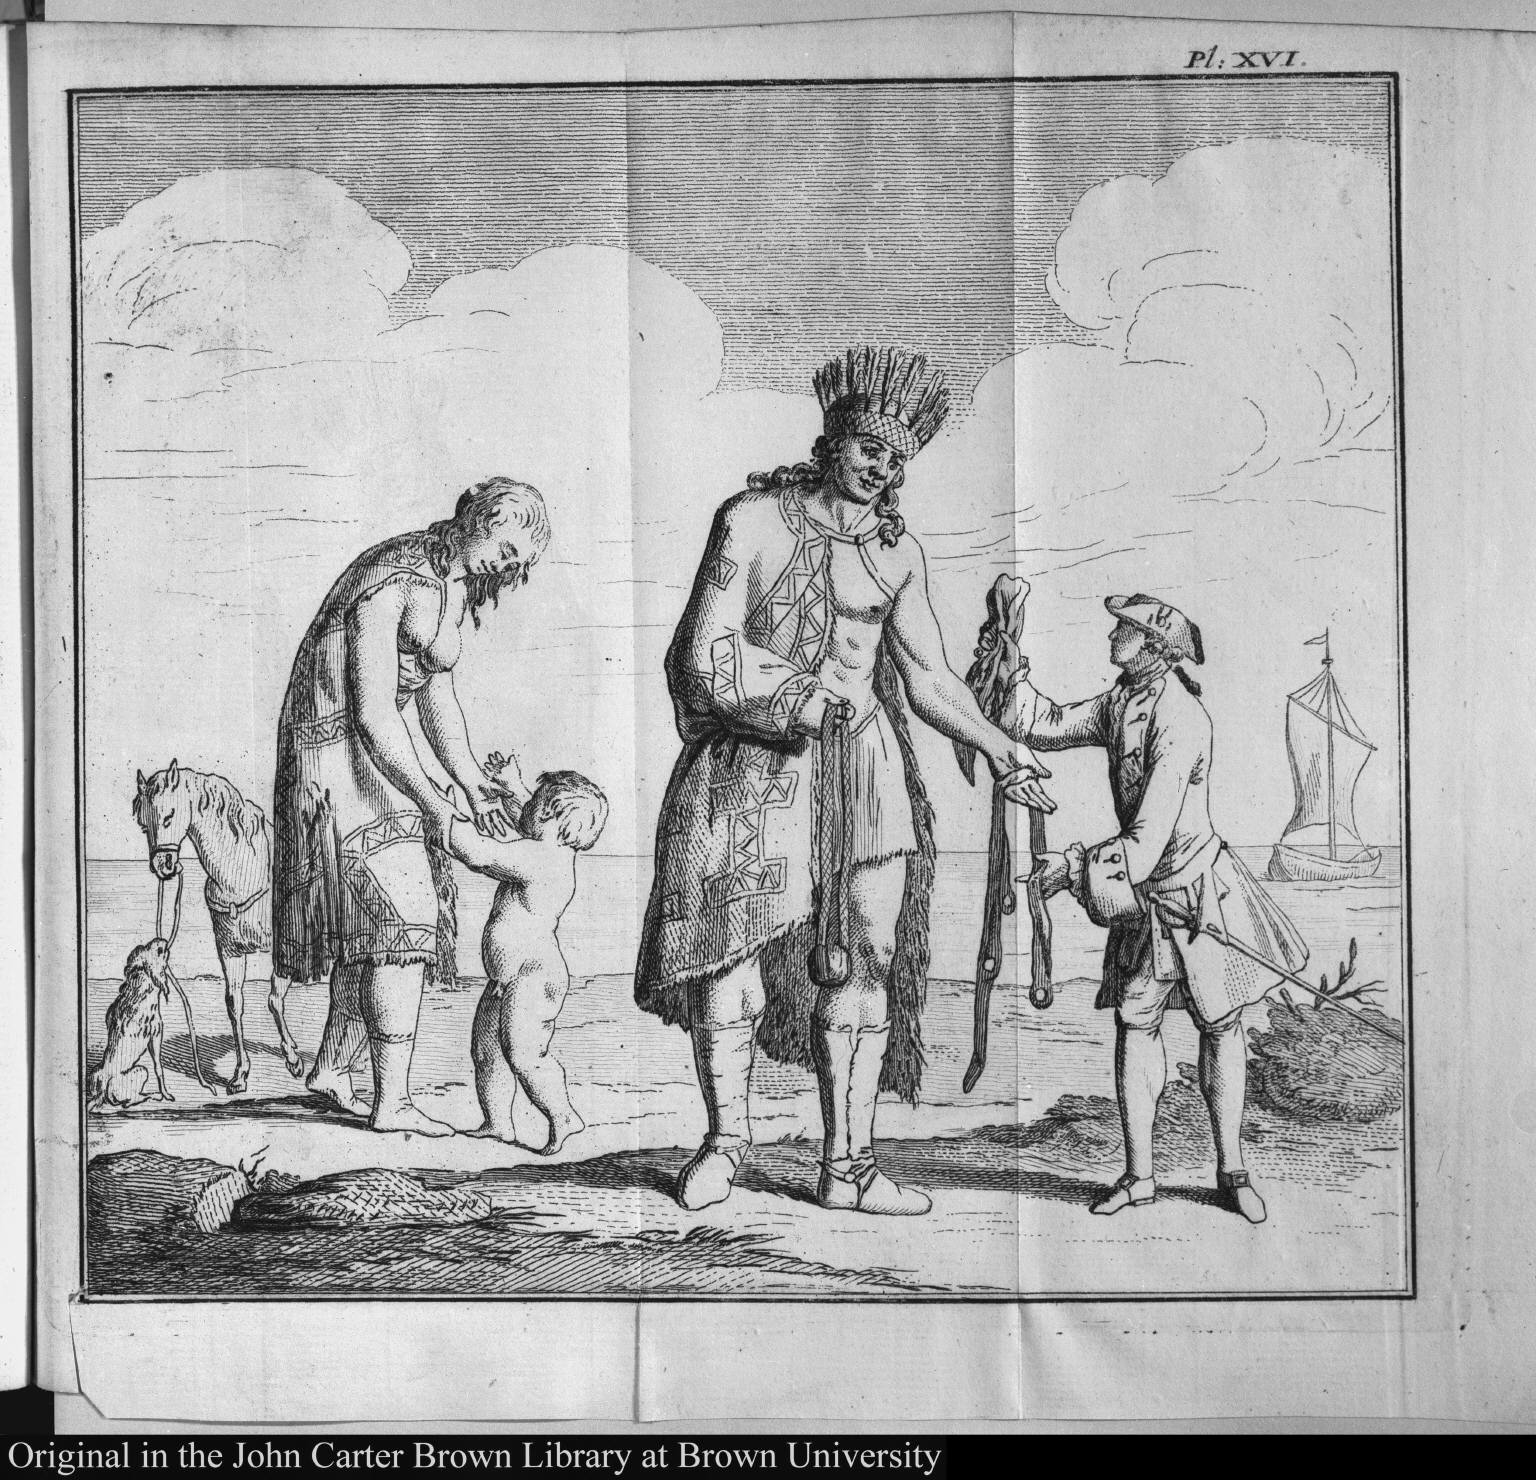 [Patagonian giant family]